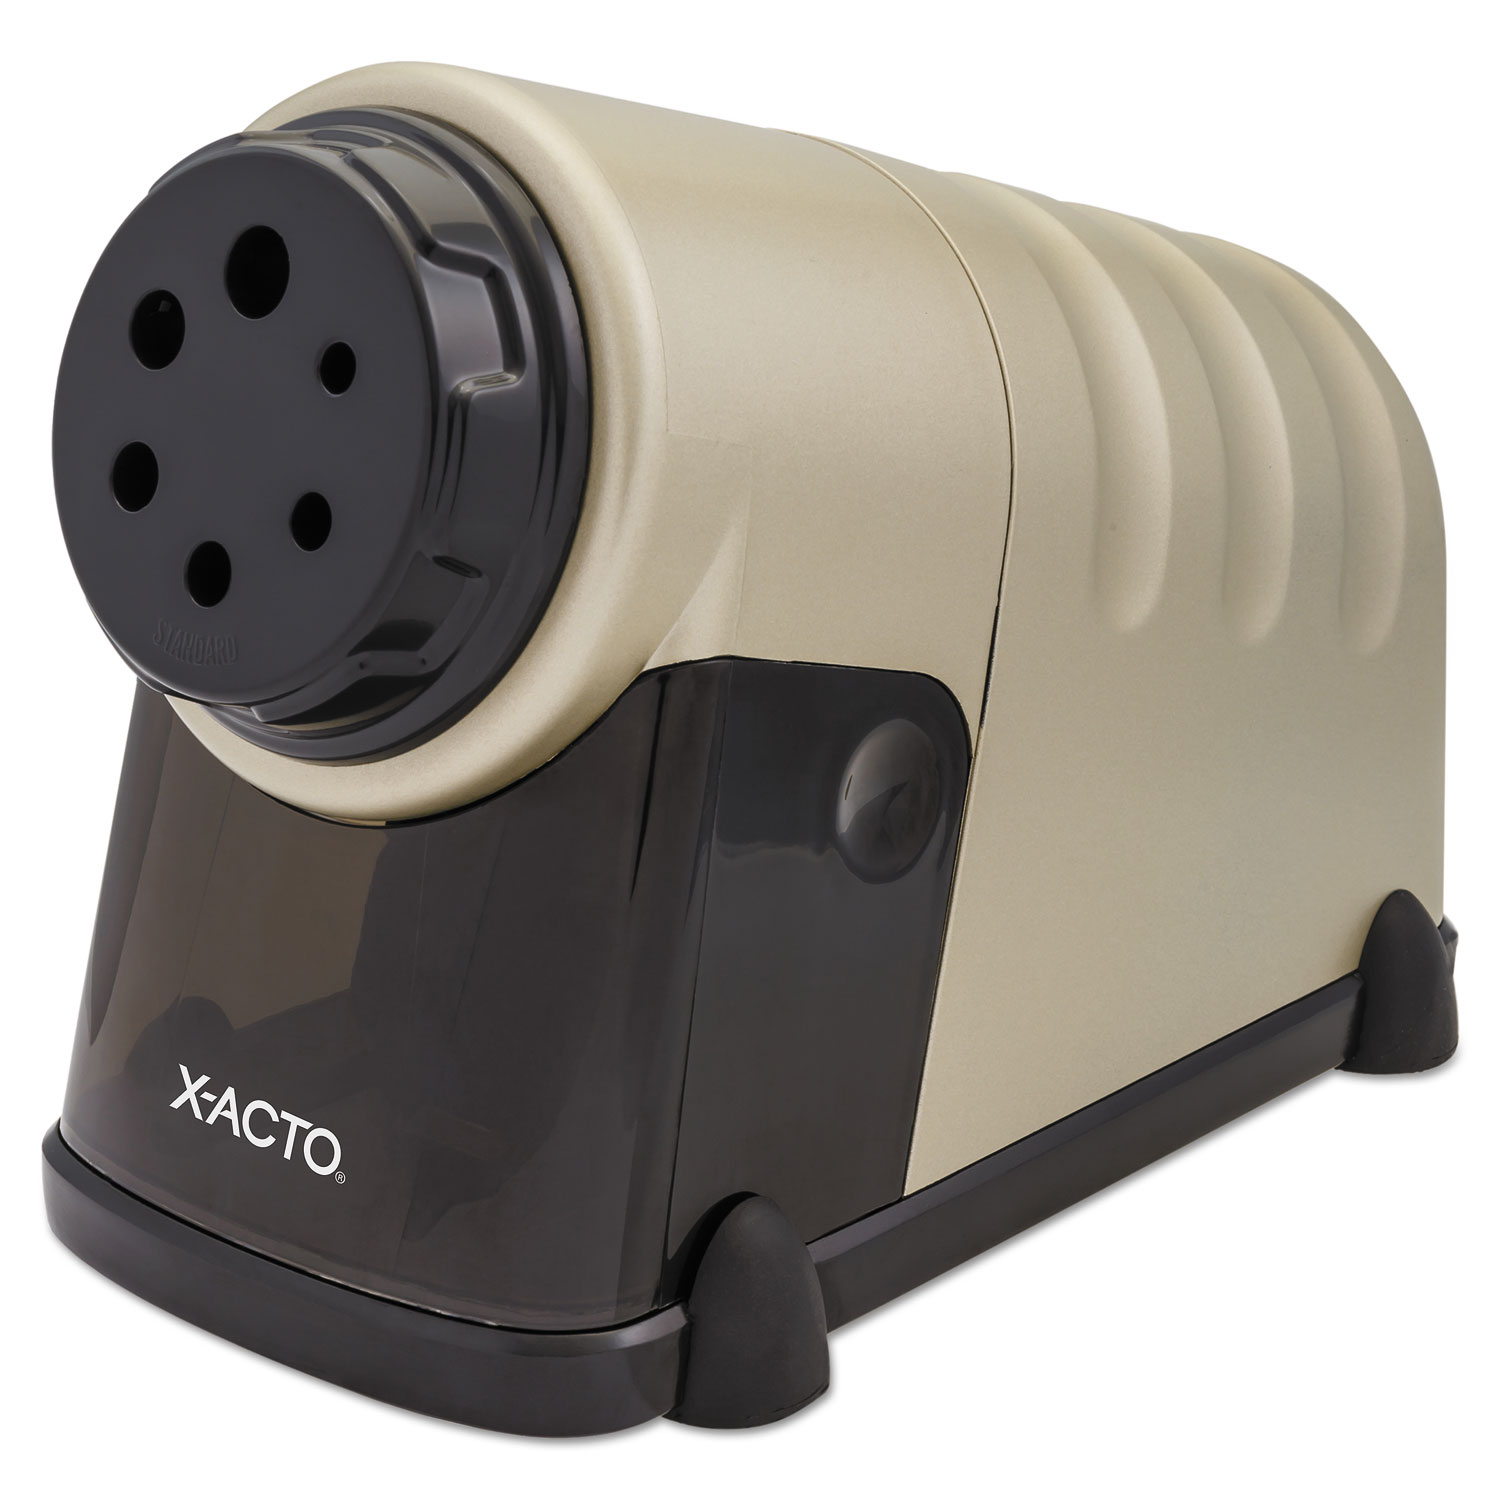 "Model 41 High-Volume Commercial Electric Pencil Sharpener, AC-Powered, 4"" x 8.75"" x 5.5"", Beige"